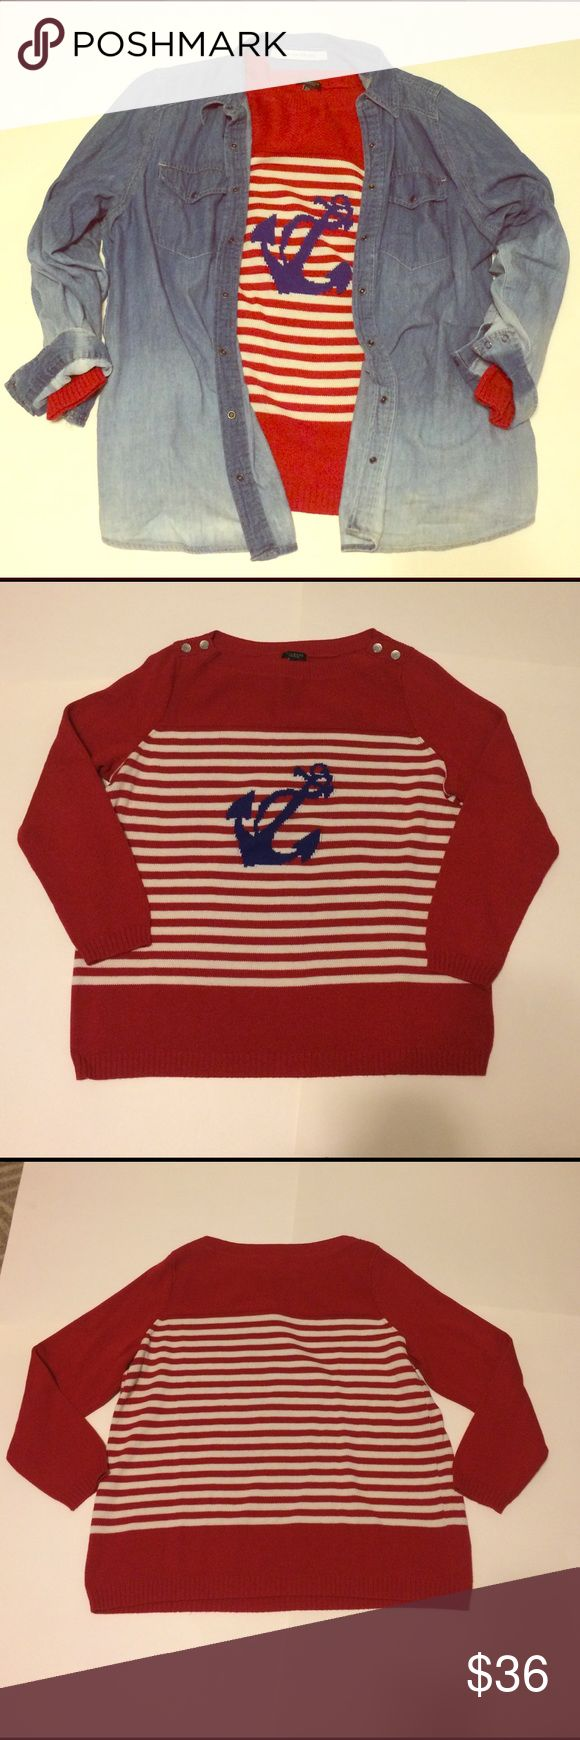 Talbots Woman Petite Anchor Sweater🐟 Perfect for right now! This red and white striped sweater has a royal blue anchor in the middle and buttons on the shoulders! 60% cotton, 40% Acrylic. This is a 2X Petite!! ✨if you have any questions please ask!✨ Talbots Sweaters Crew & Scoop Necks